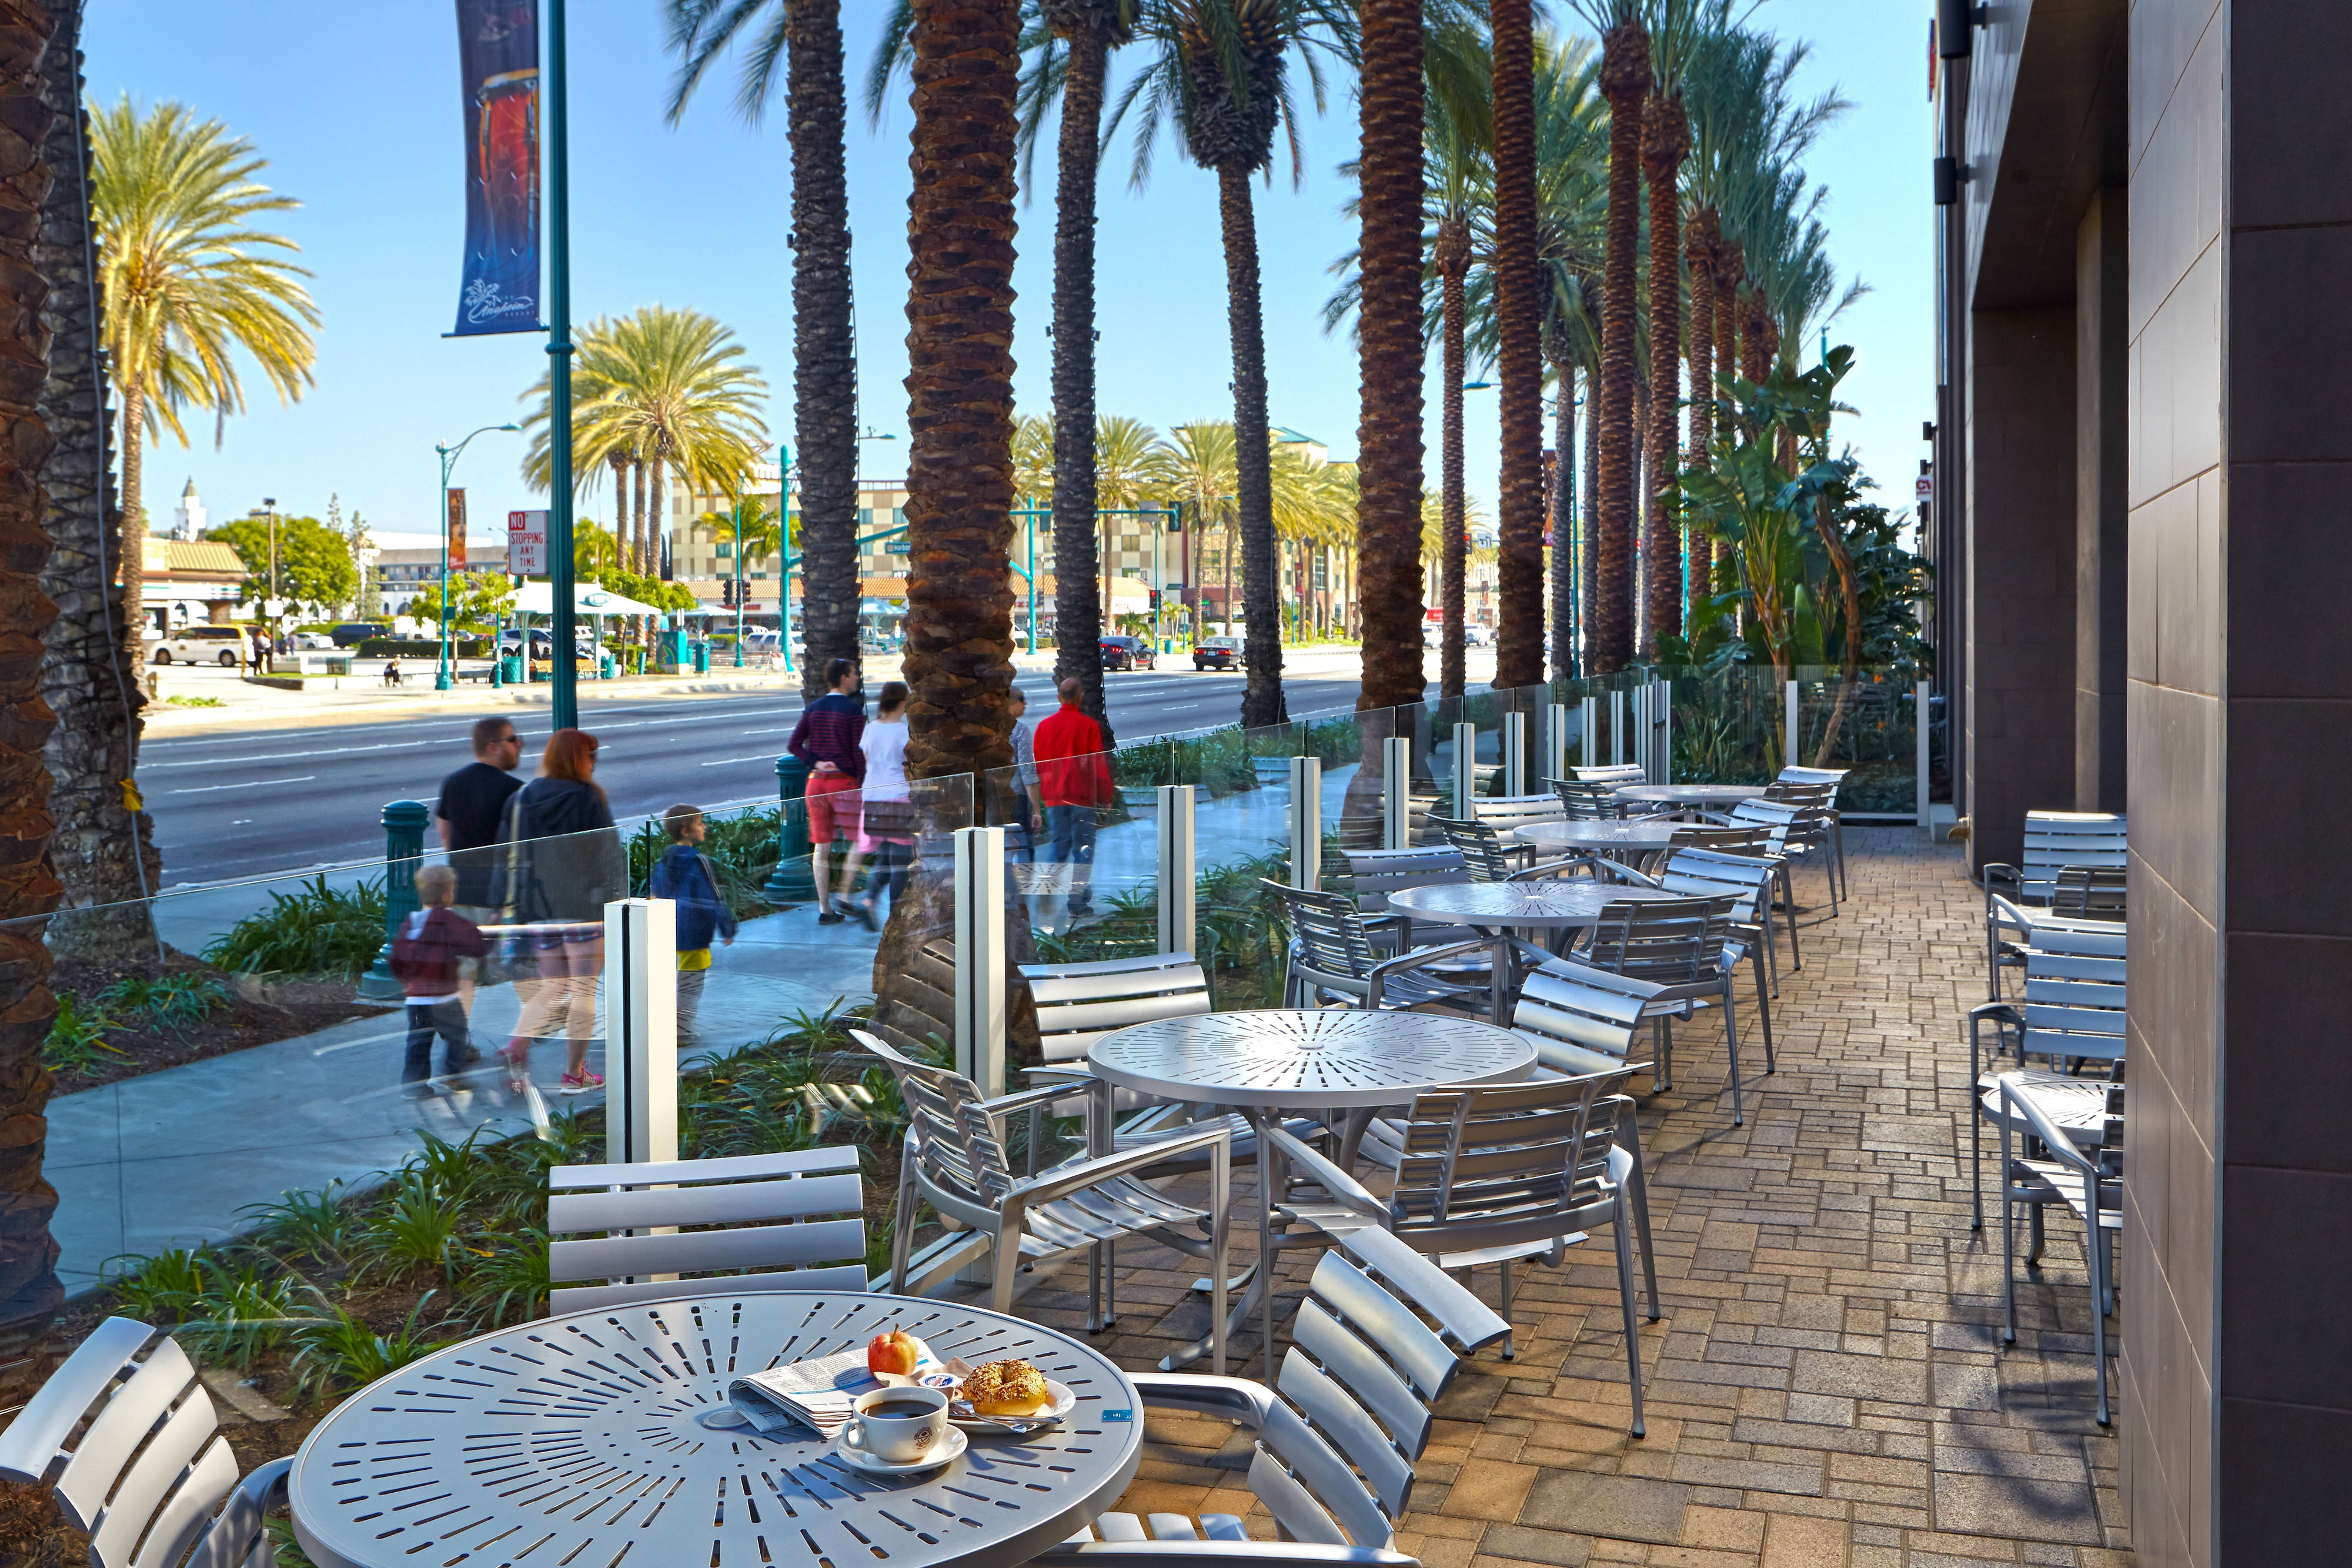 Springhill Suites at Anaheim Resort Outdoor Patio